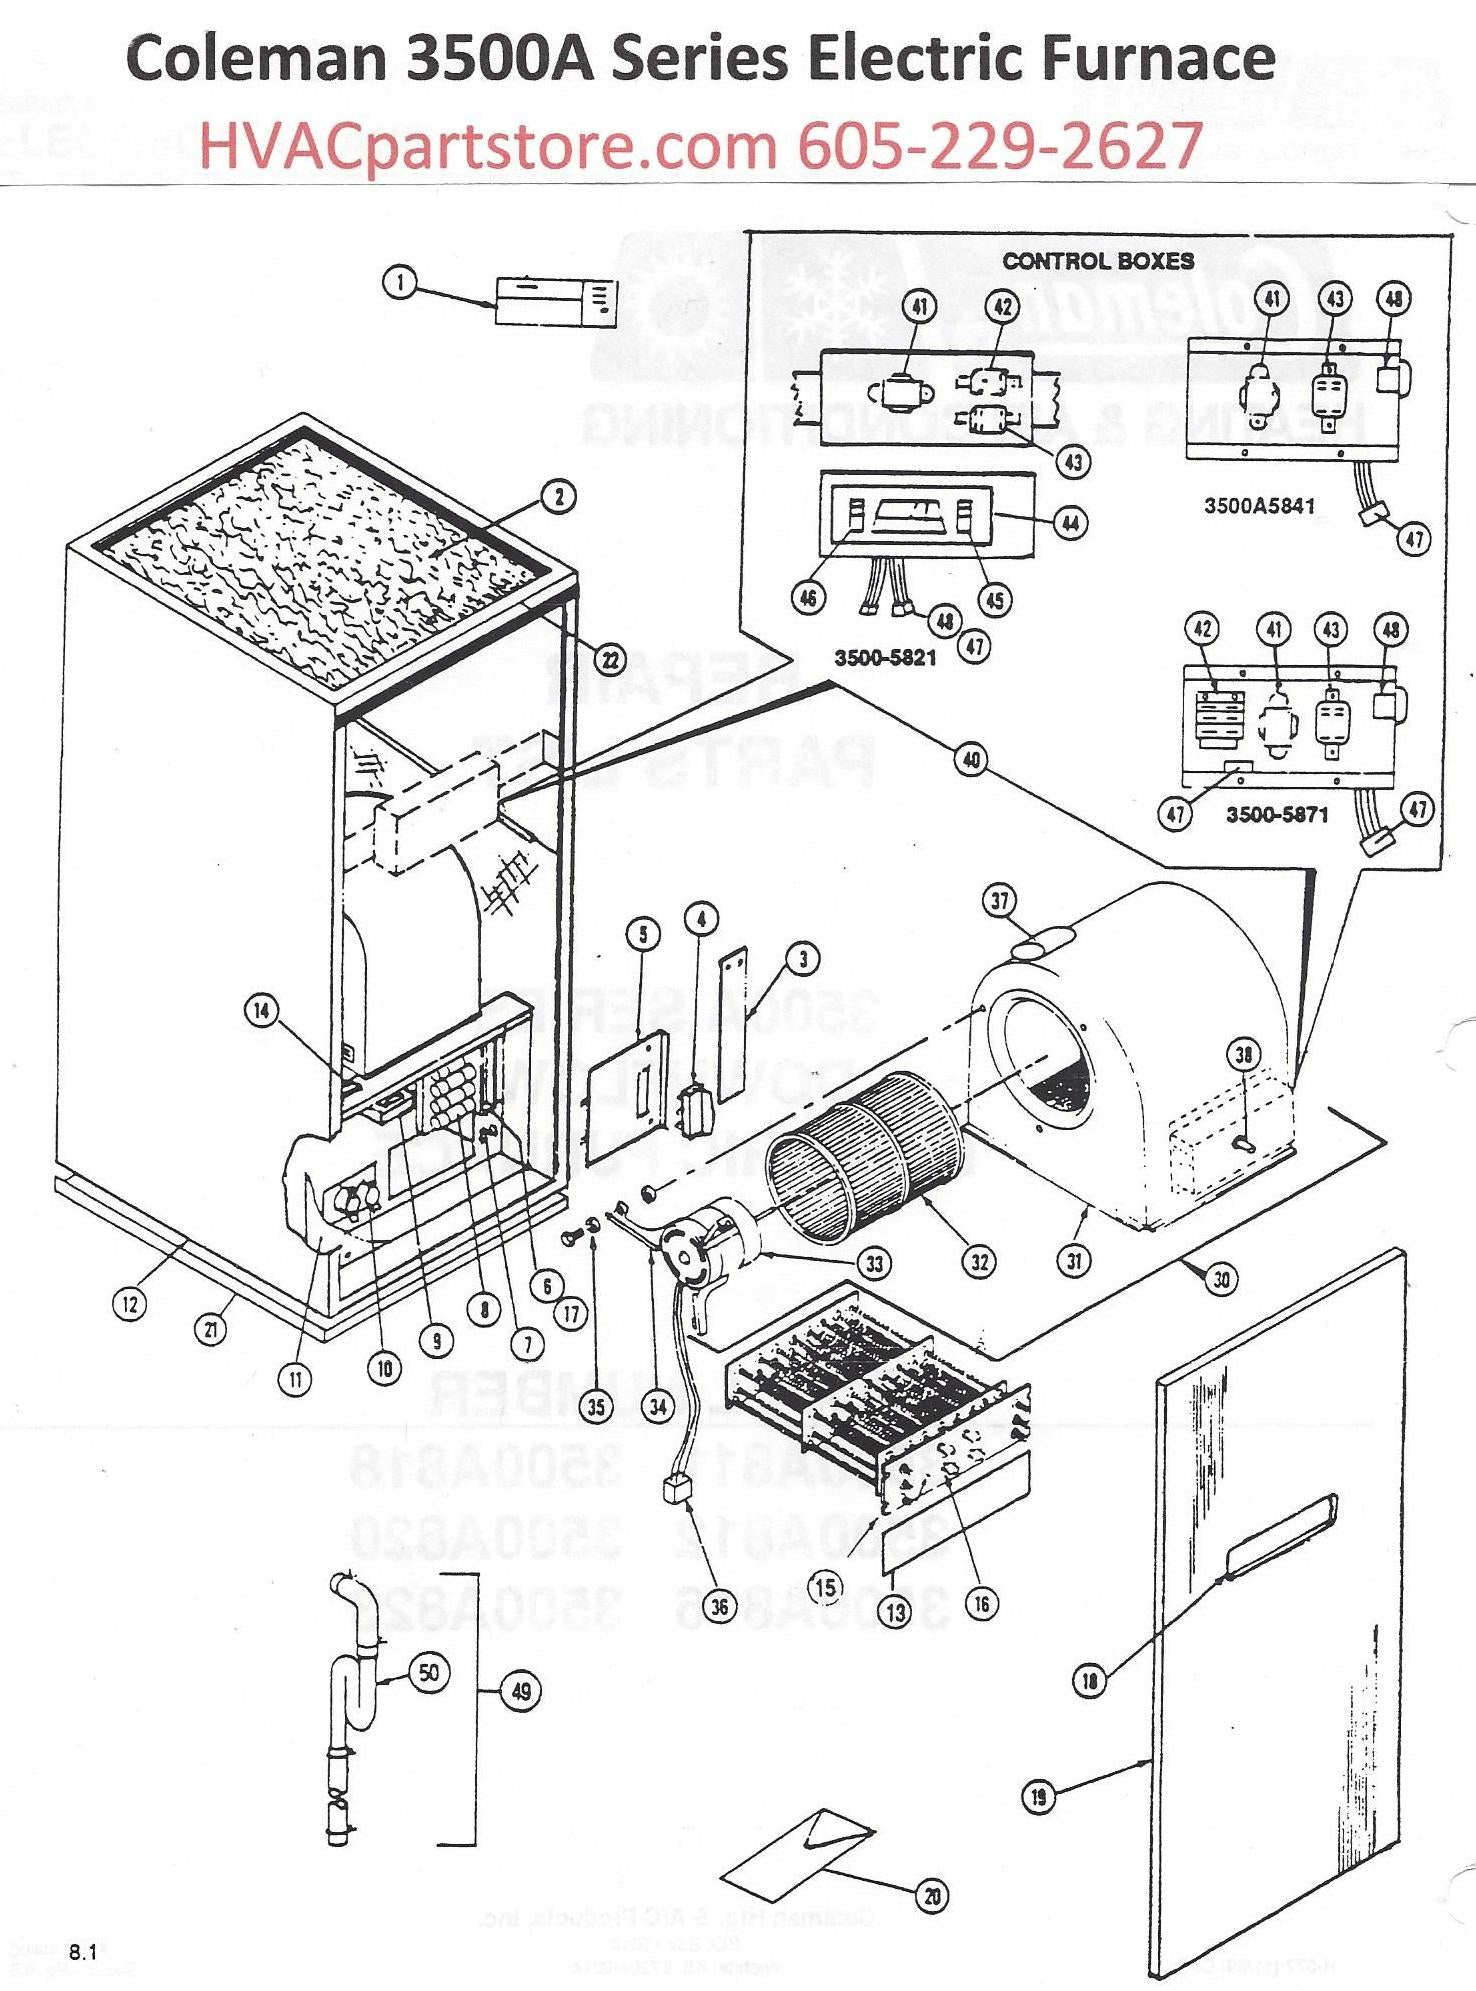 wiring diagram coleman electric furnace with 3500a823 Coleman Electric Furnace Parts on 7970 856 Coleman Gas Furnace Parts likewise E moreover Furnaces also Eb20b Coleman Electric Furnace Parts additionally Go Power 30   Transfer Switch.